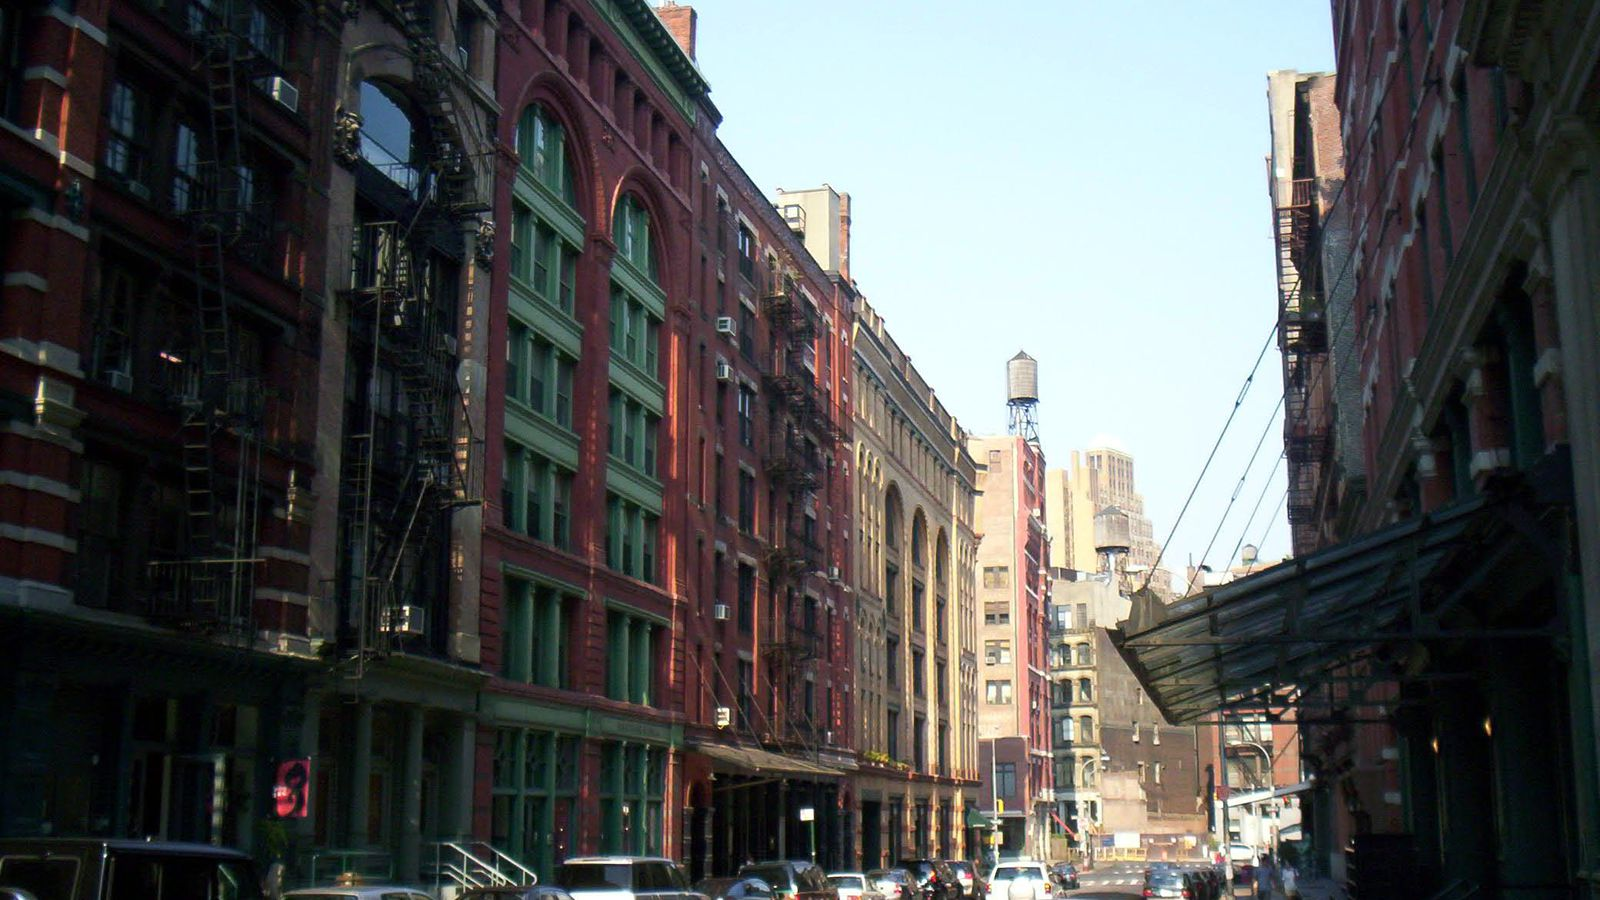 Tribeca tops nyc 39 s priciest neighborhood list yet again for Tribeca new york real estate